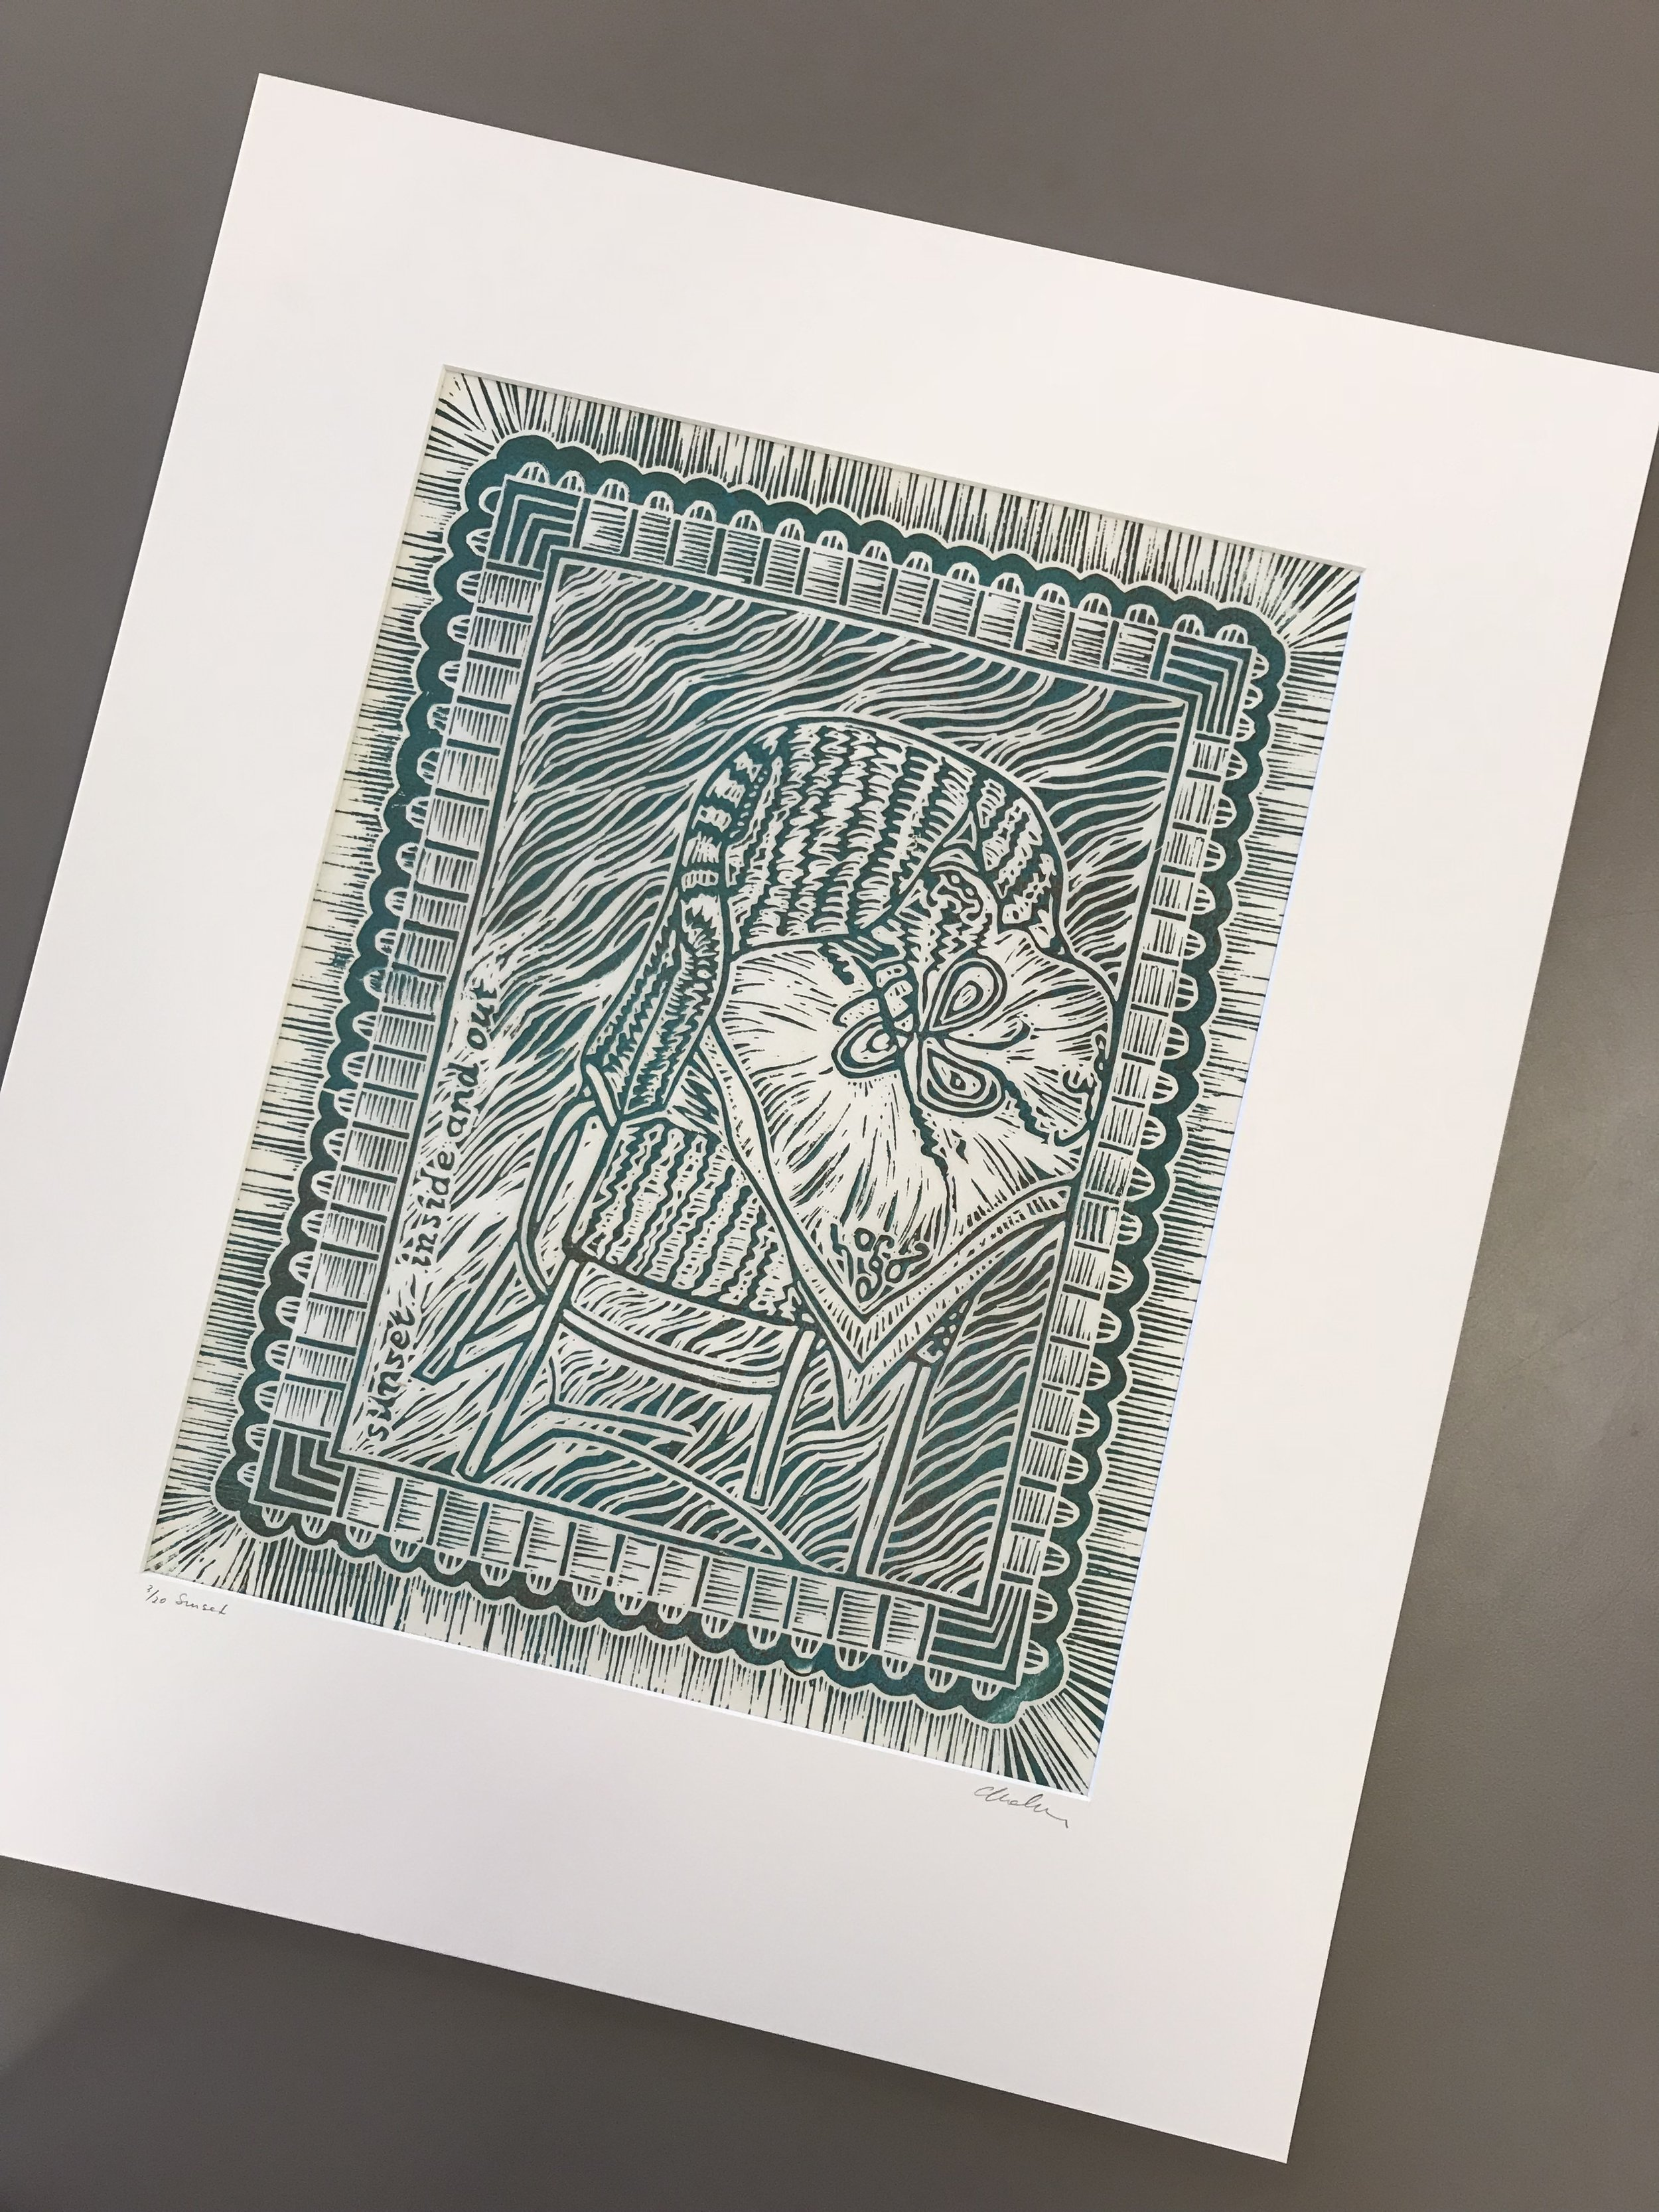 When you purchase one of our original handprinted linocut prints they come mounted in a white matt and backed on foam core, signed and numbered and tightly wrapped in cellophane.